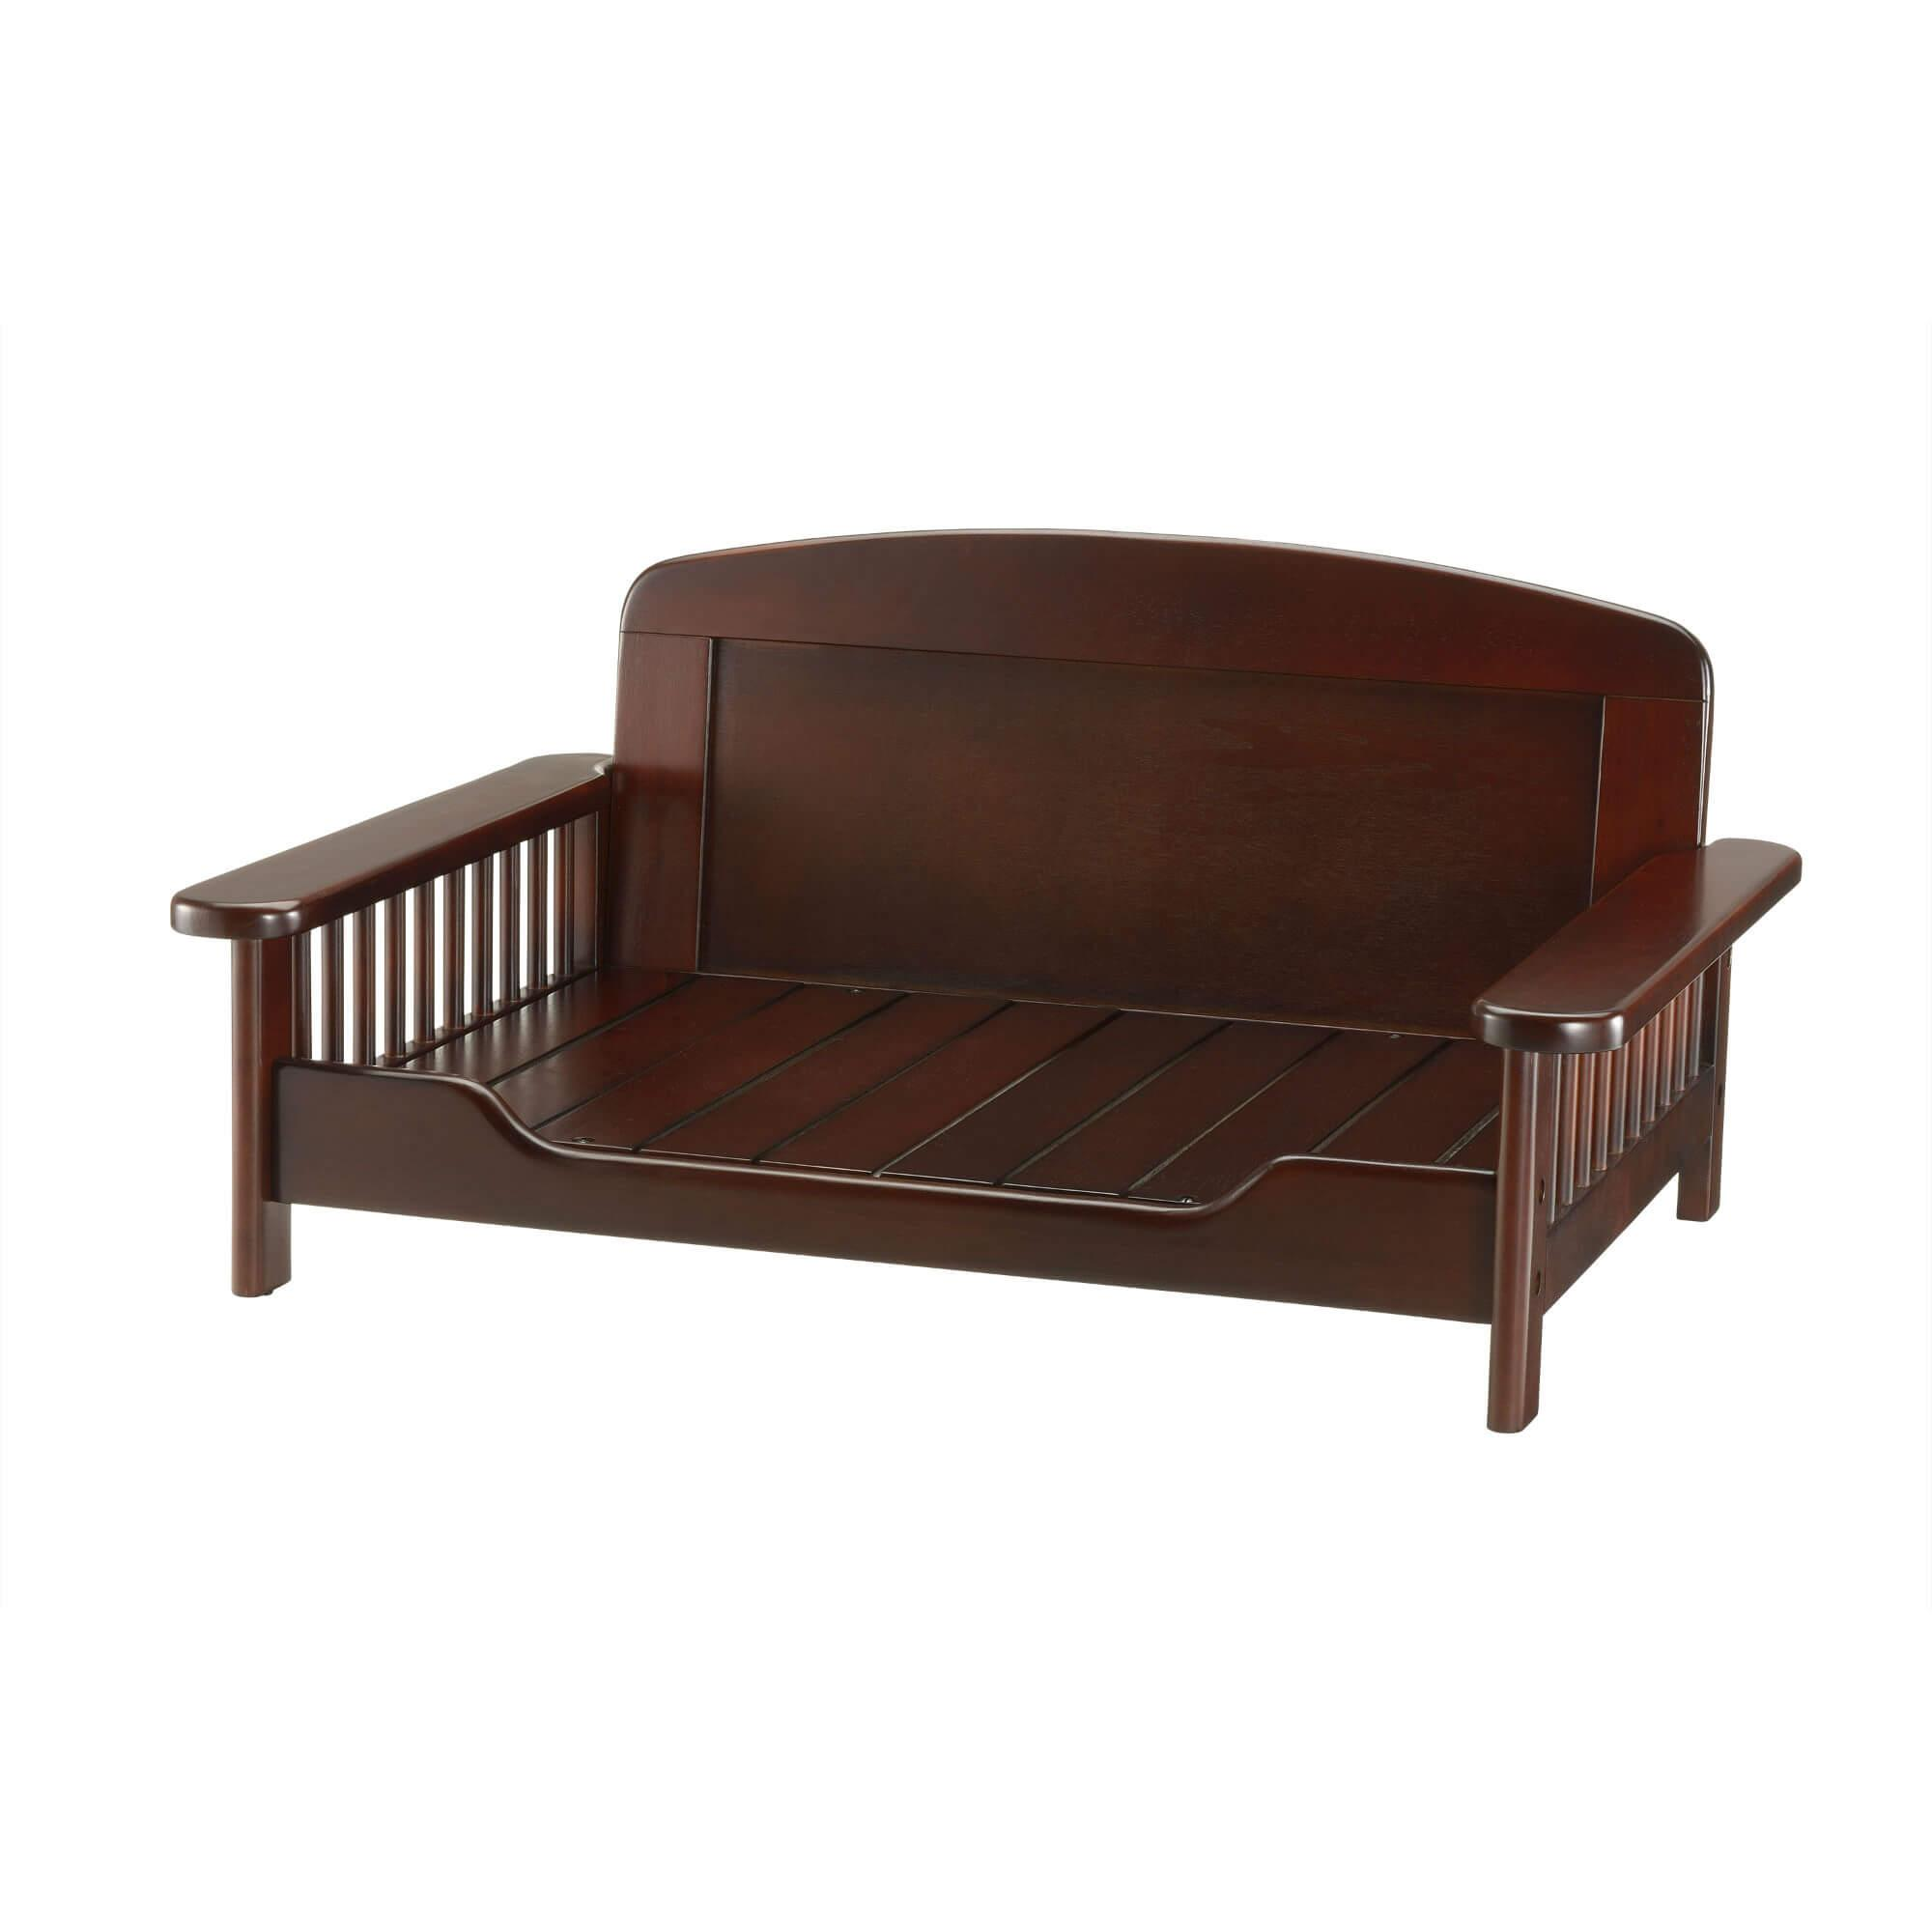 Elegant Wooden Dog Bed - Dark Brown